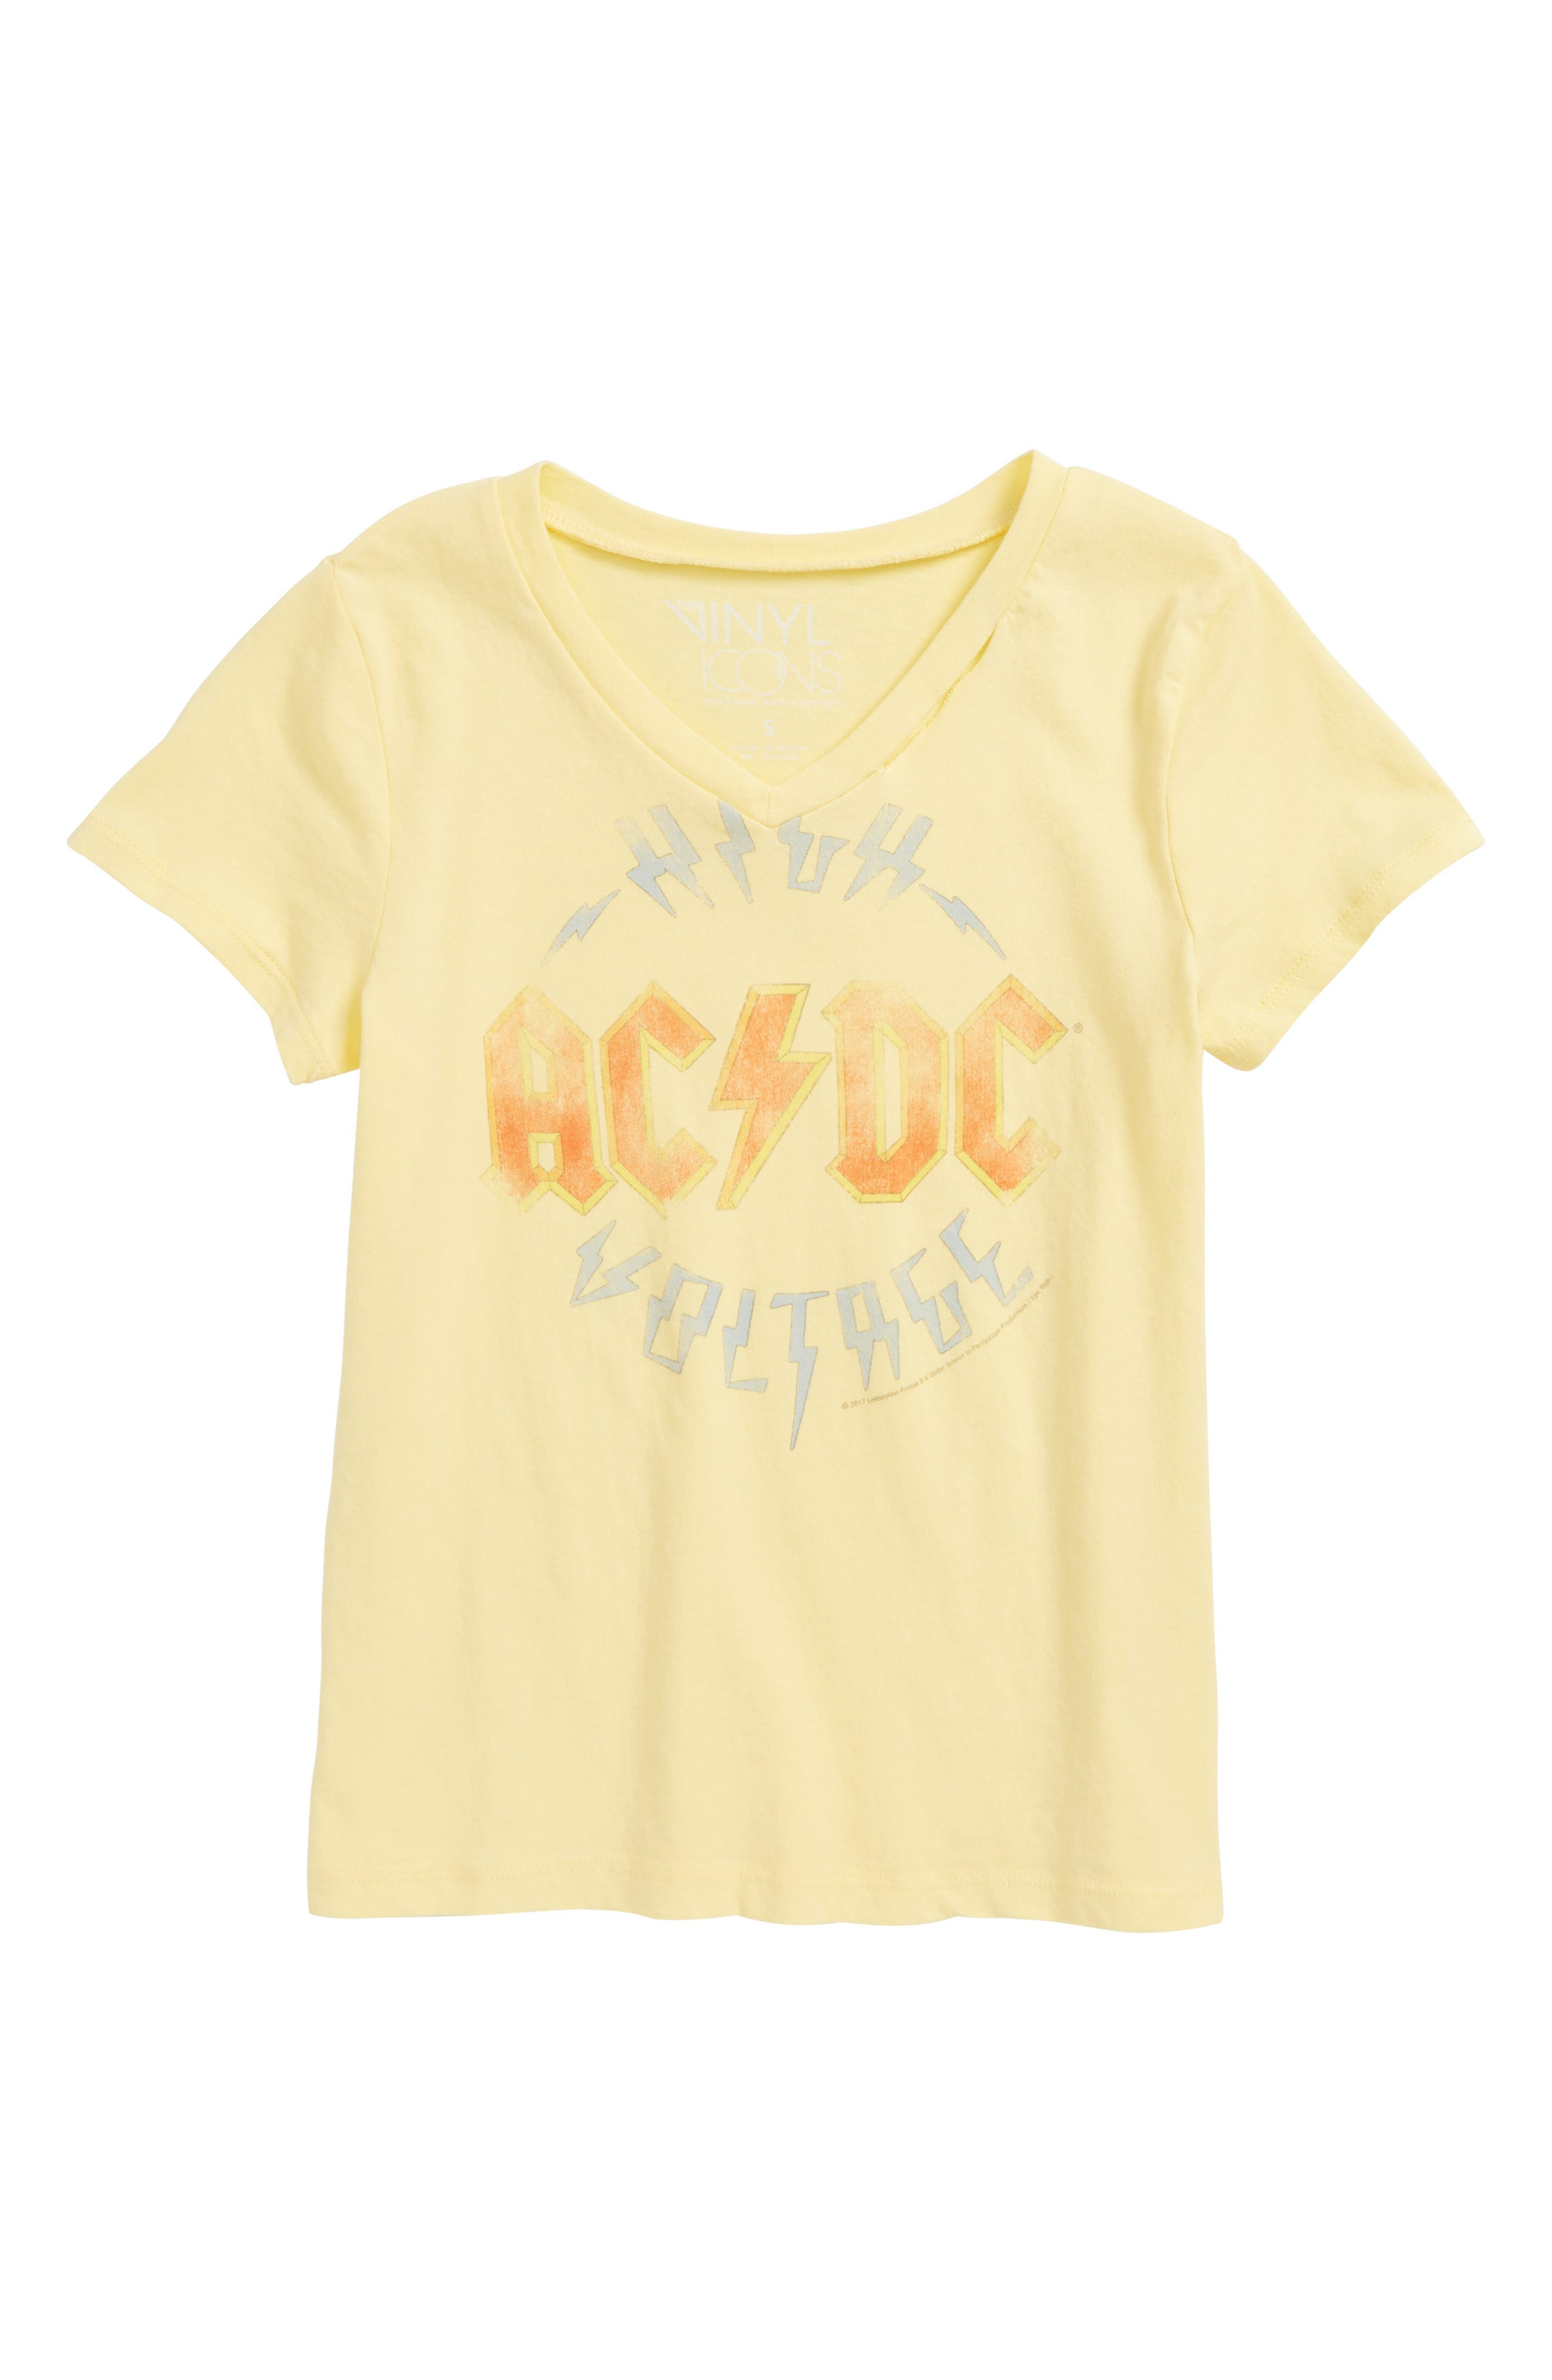 AC/DC Graphic Tee,                             Main thumbnail 1, color,                             700